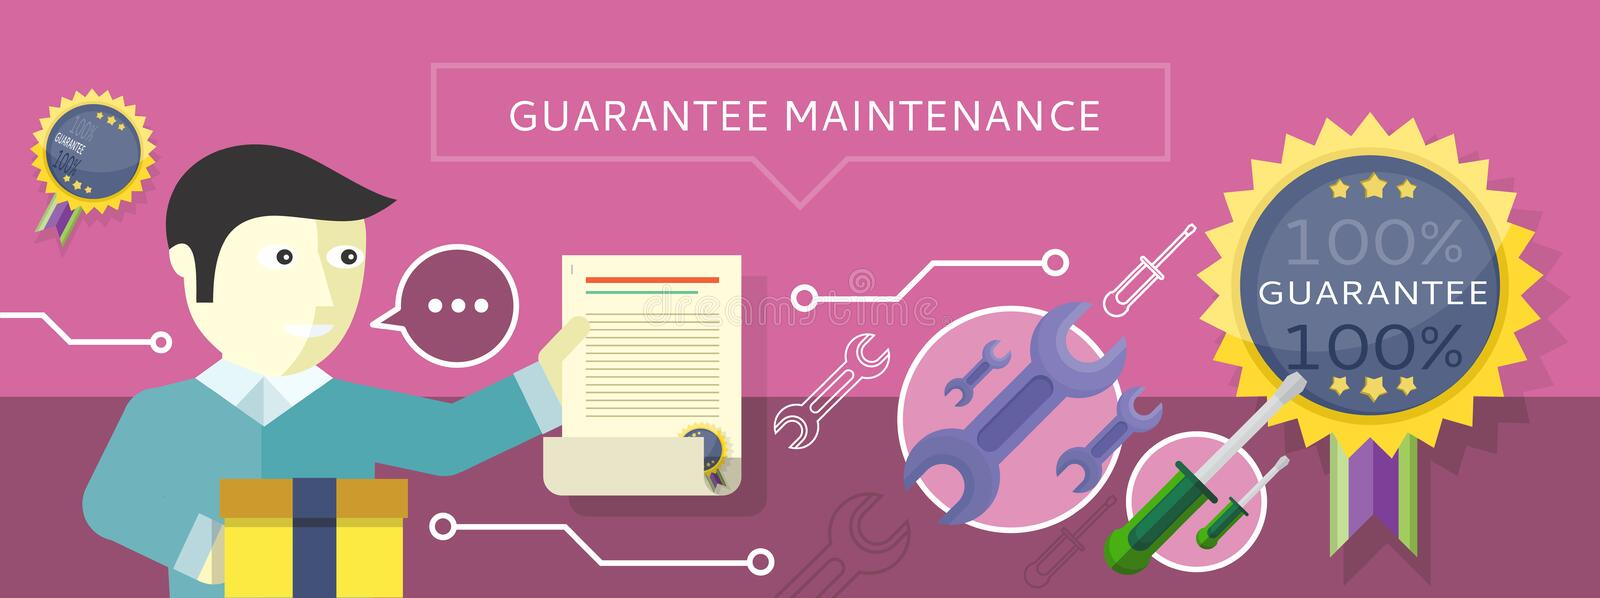 Concept to Provide Service Guarantees Maintenance. Man holding a document Guarantee on the purple background. For web banners, promotional materials royalty free illustration